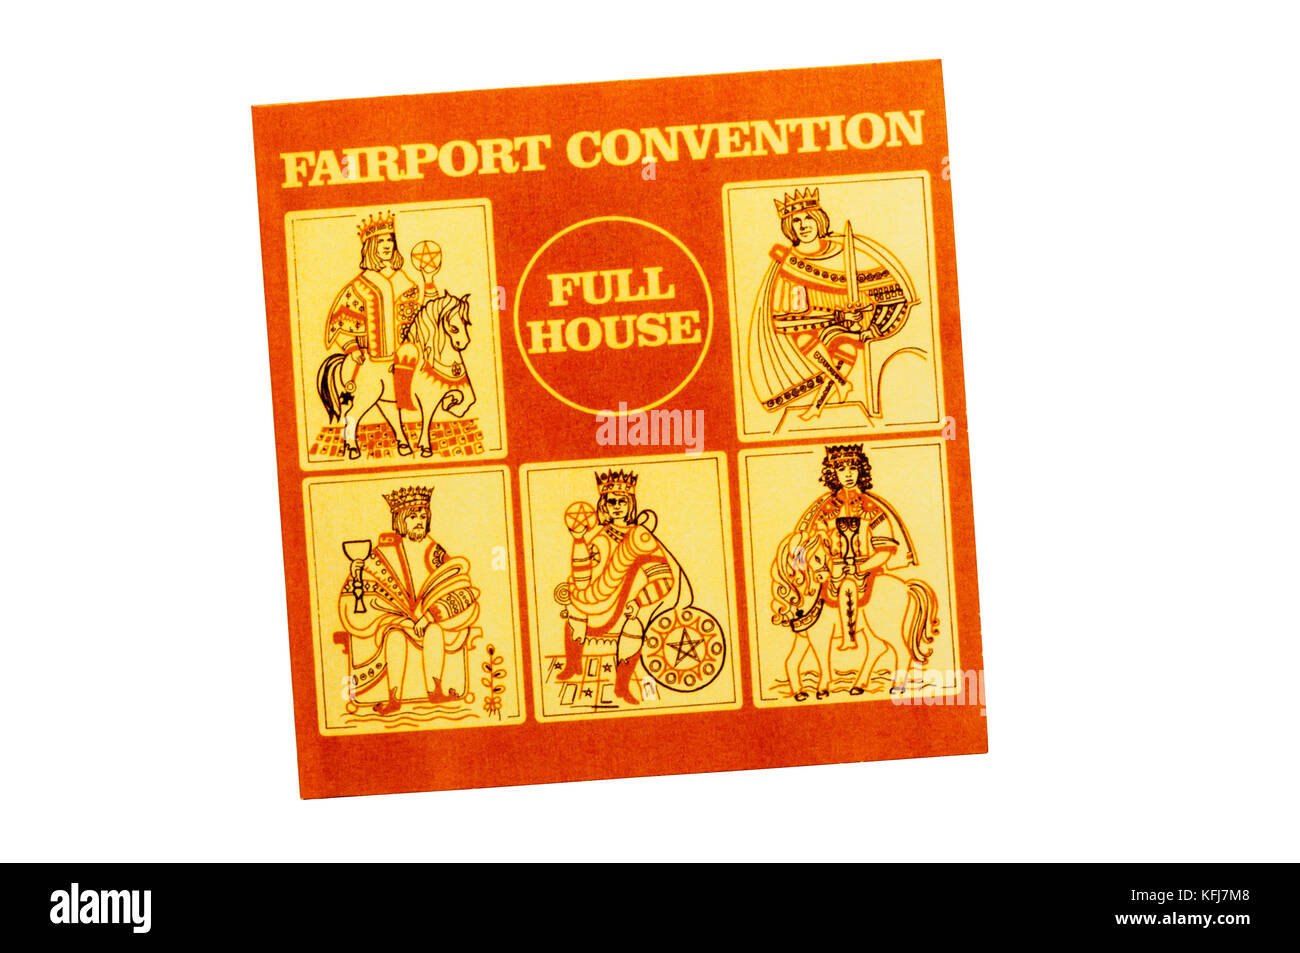 Full House was the fifth album by British folk rock band Fairport Convention. Released in 1970. - Stock Image